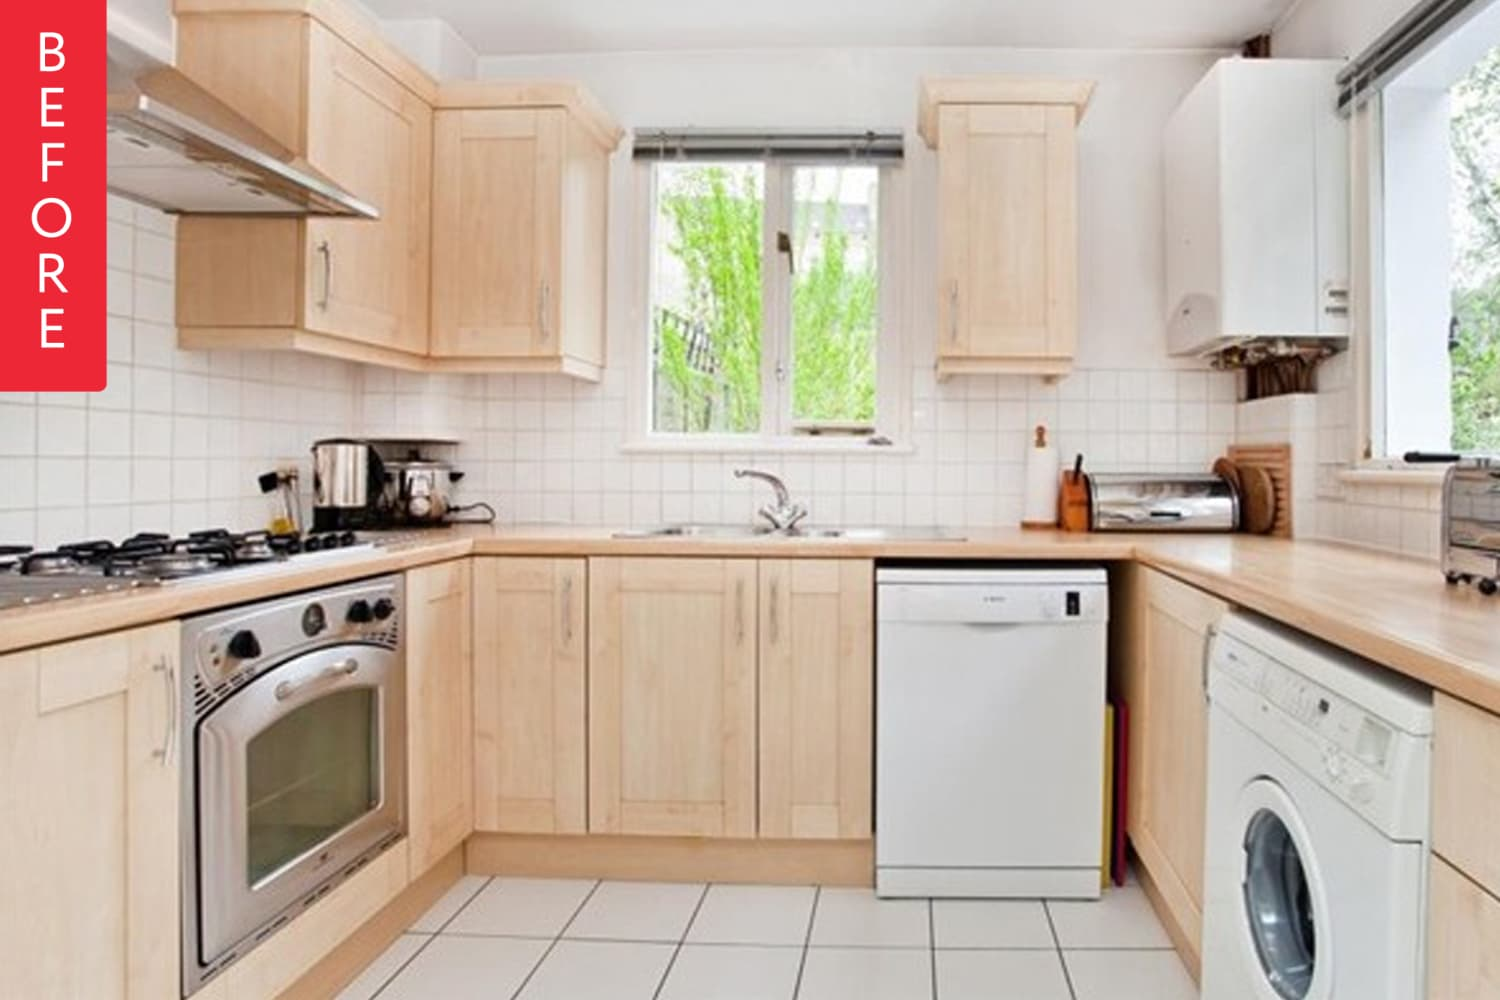 Before and After: A Kitchen Reno That Didn't Break the Bank